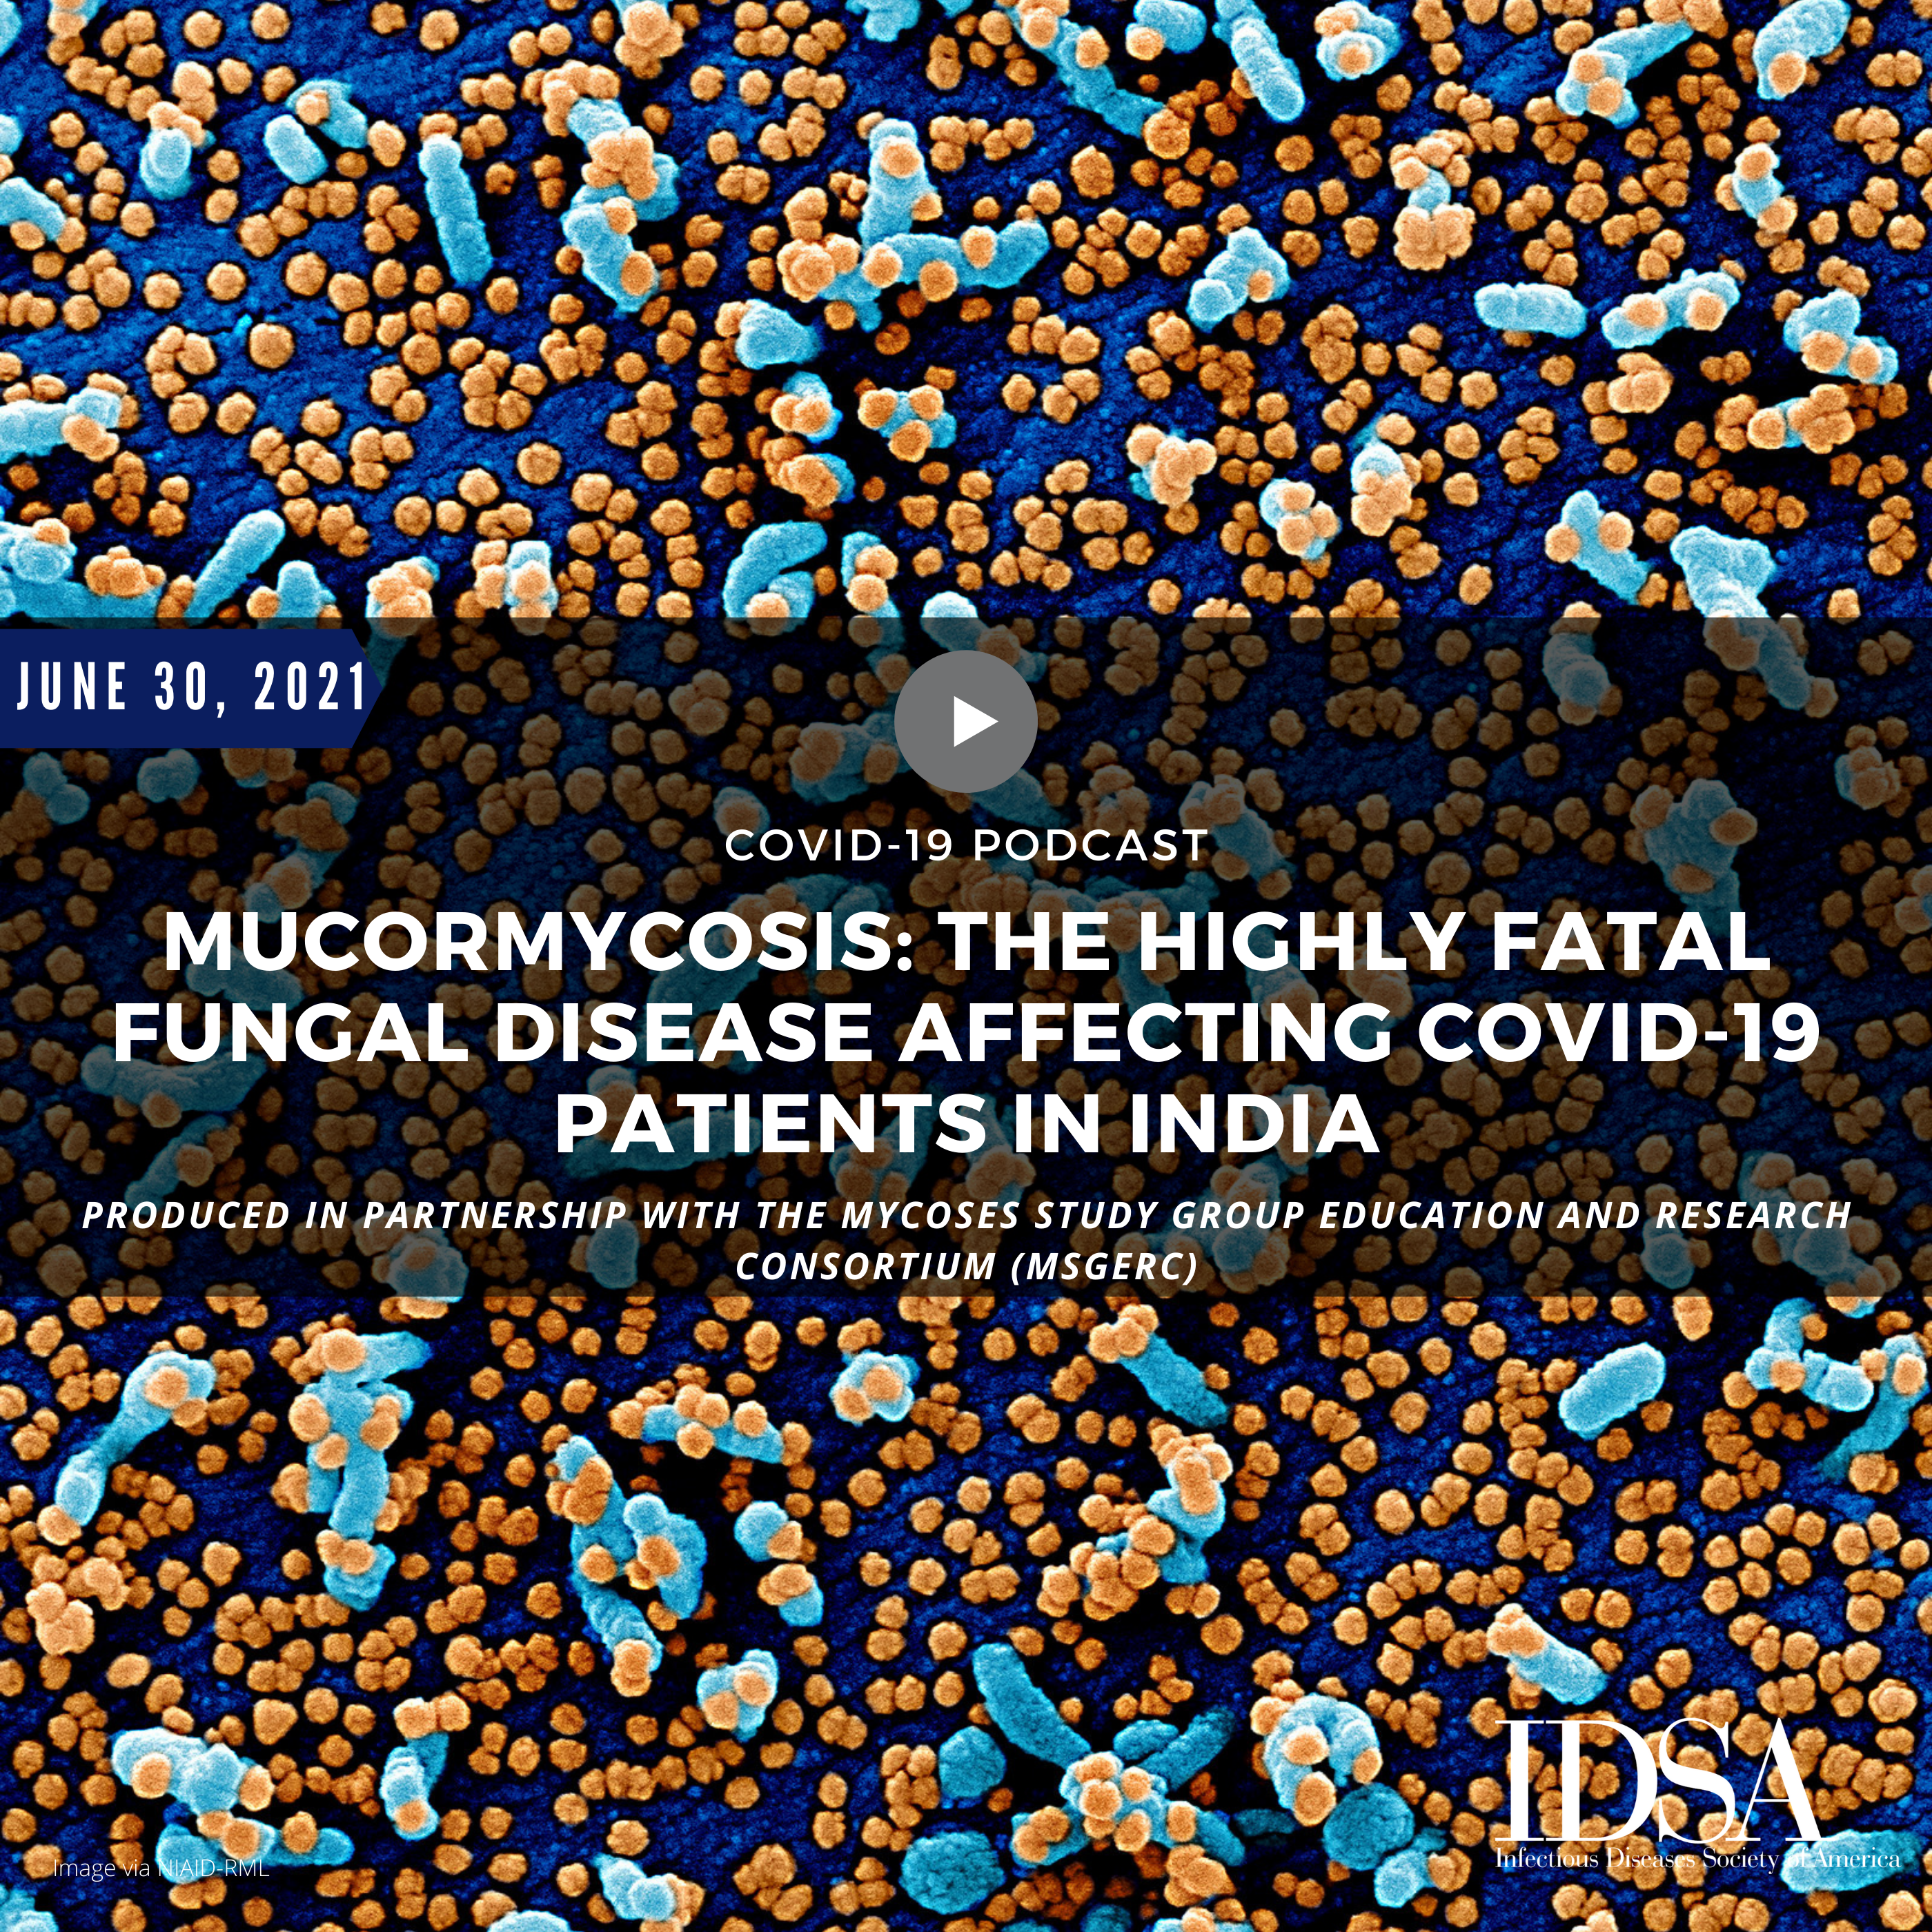 Mucormycosis: The Highly Fatal Fungal Disease Affecting COVID-19 Patients in India